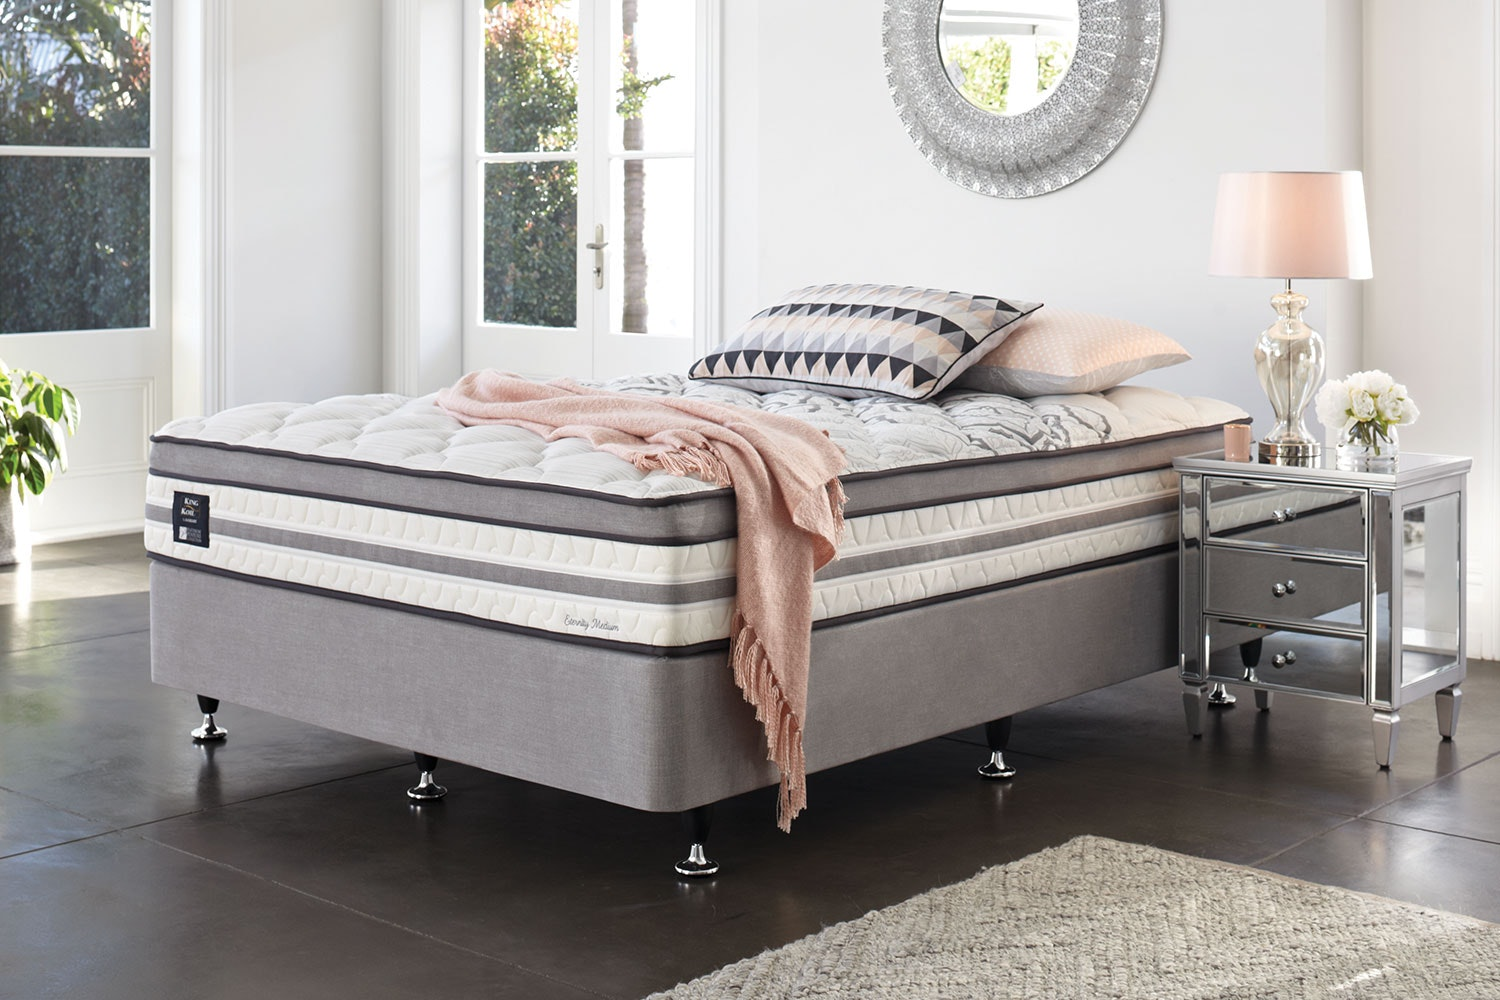 Eternity Medium King Bed by King Koil